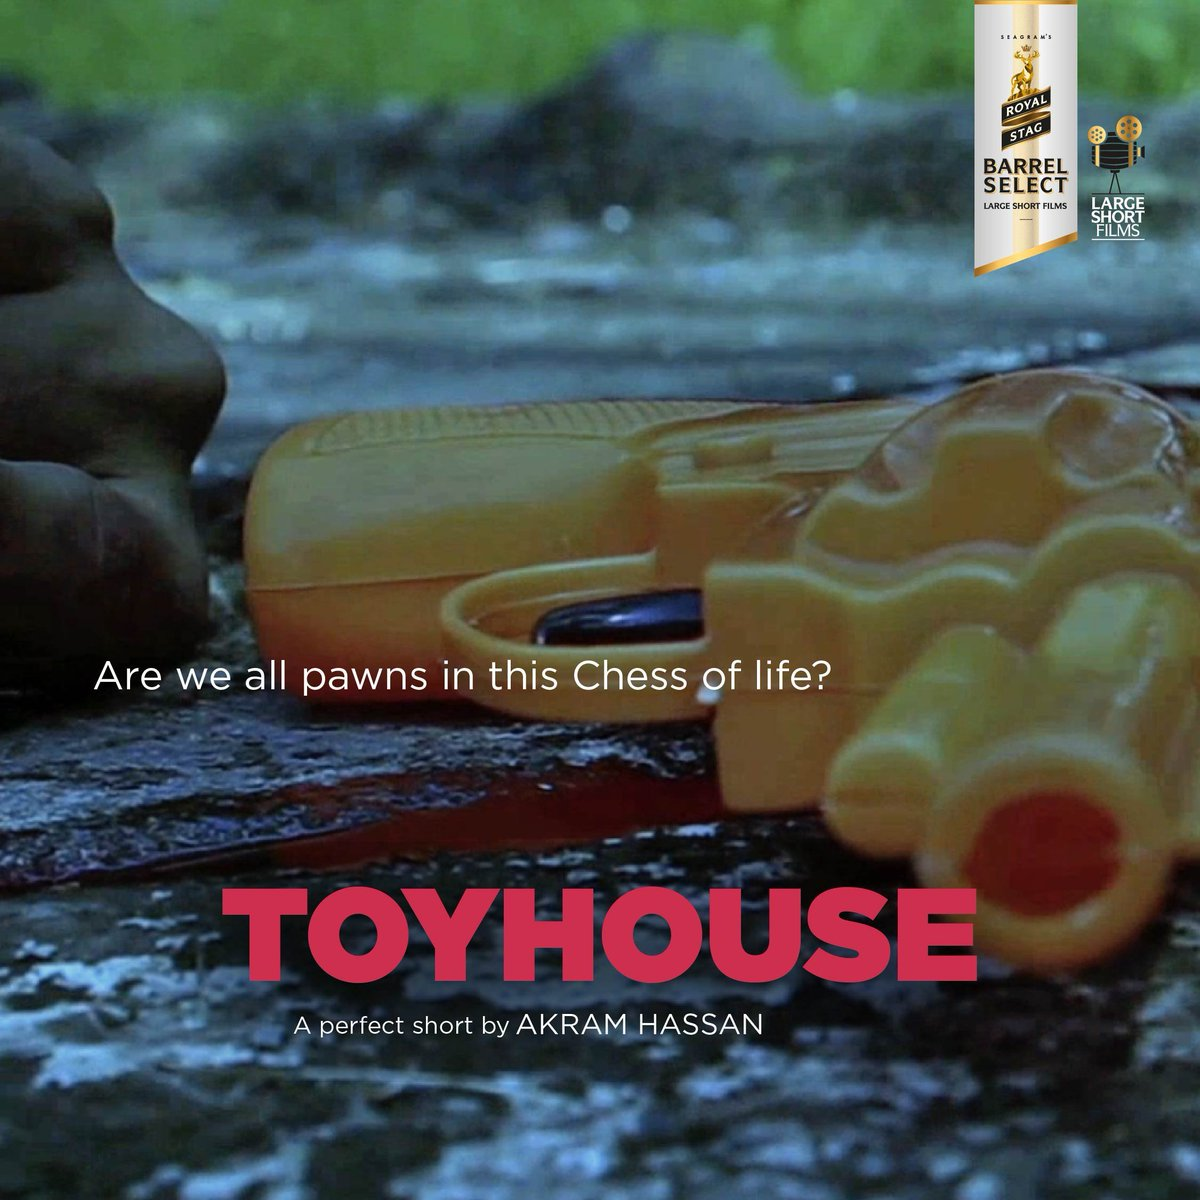 toyhouse - Twitter Search